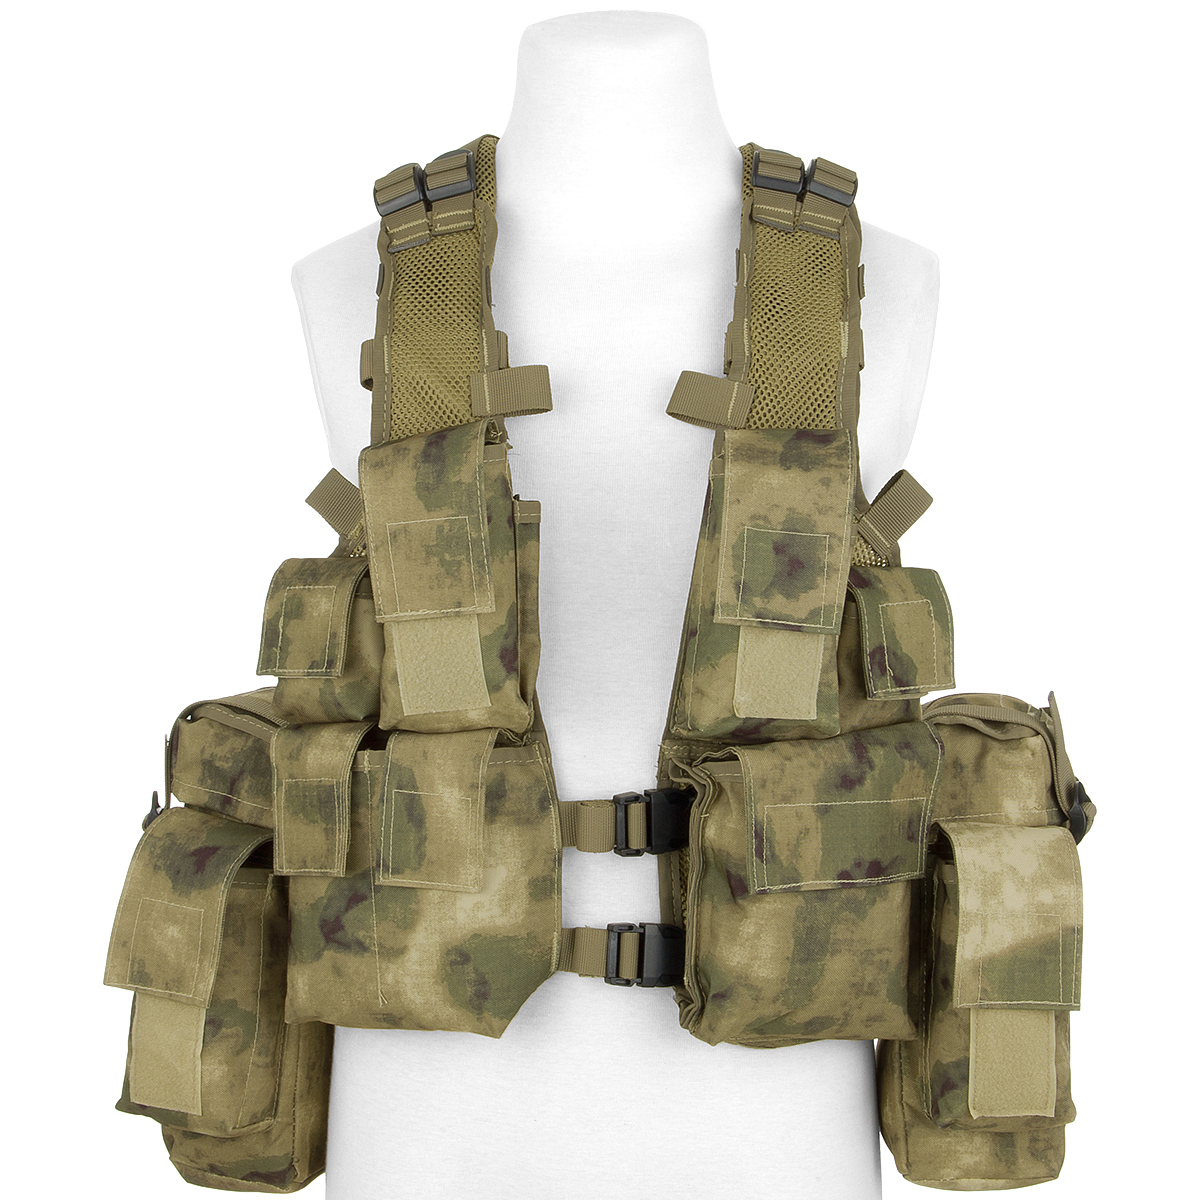 Details about MFH South African Assault Vest Cargo Hunting Airsoft Combat  HDT Camo FG Camo